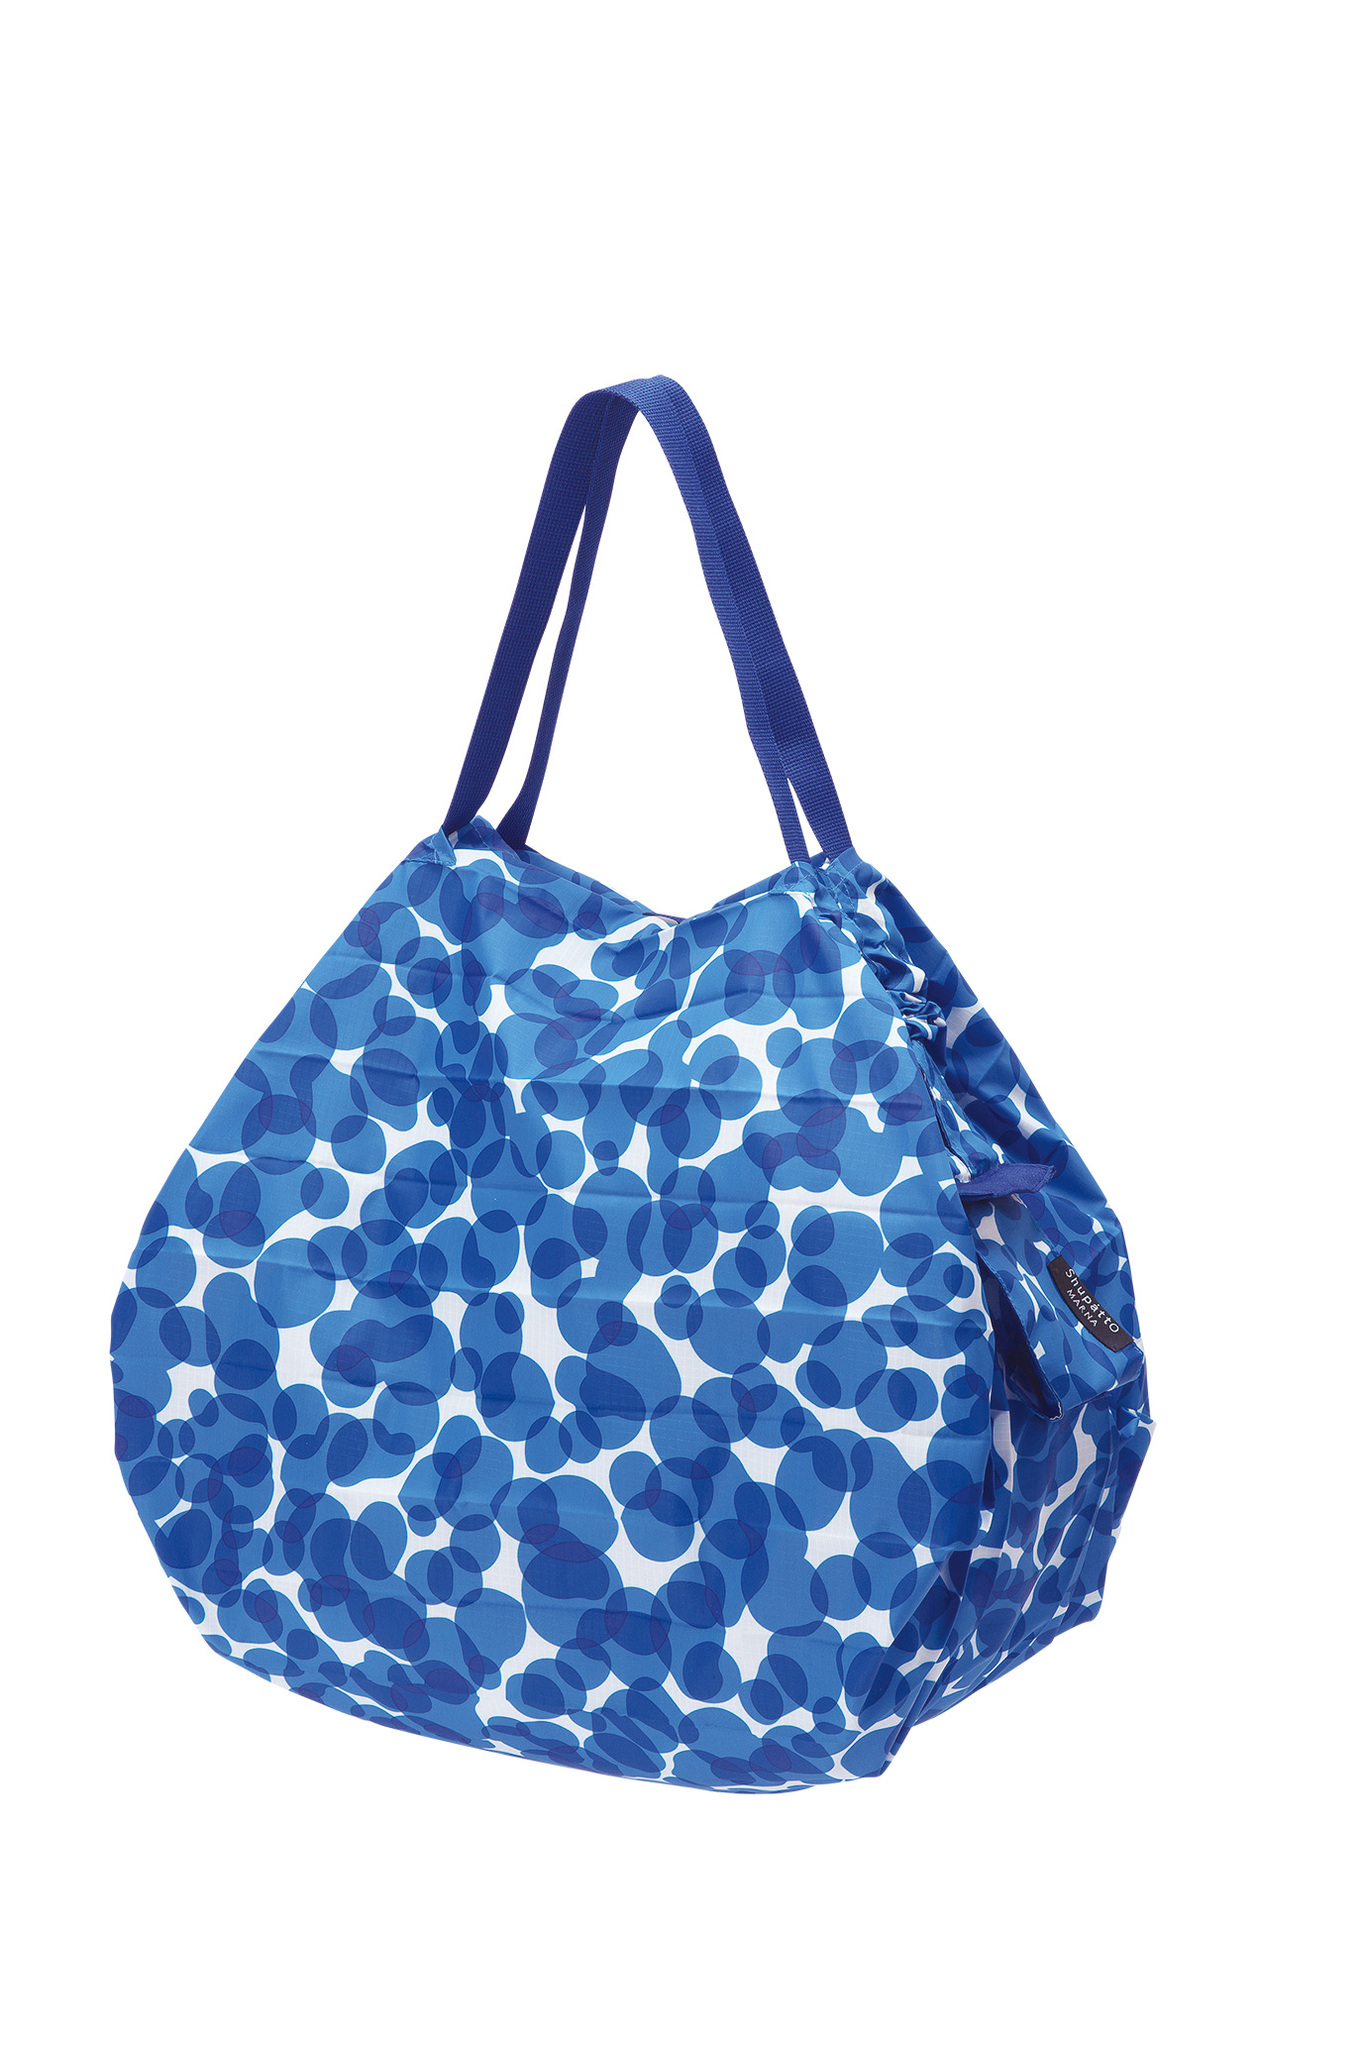 Compact Bag M - UMI - Foldable Shopping Bag One-Pull (patented) Multicoloured (Blue/White), Polyester